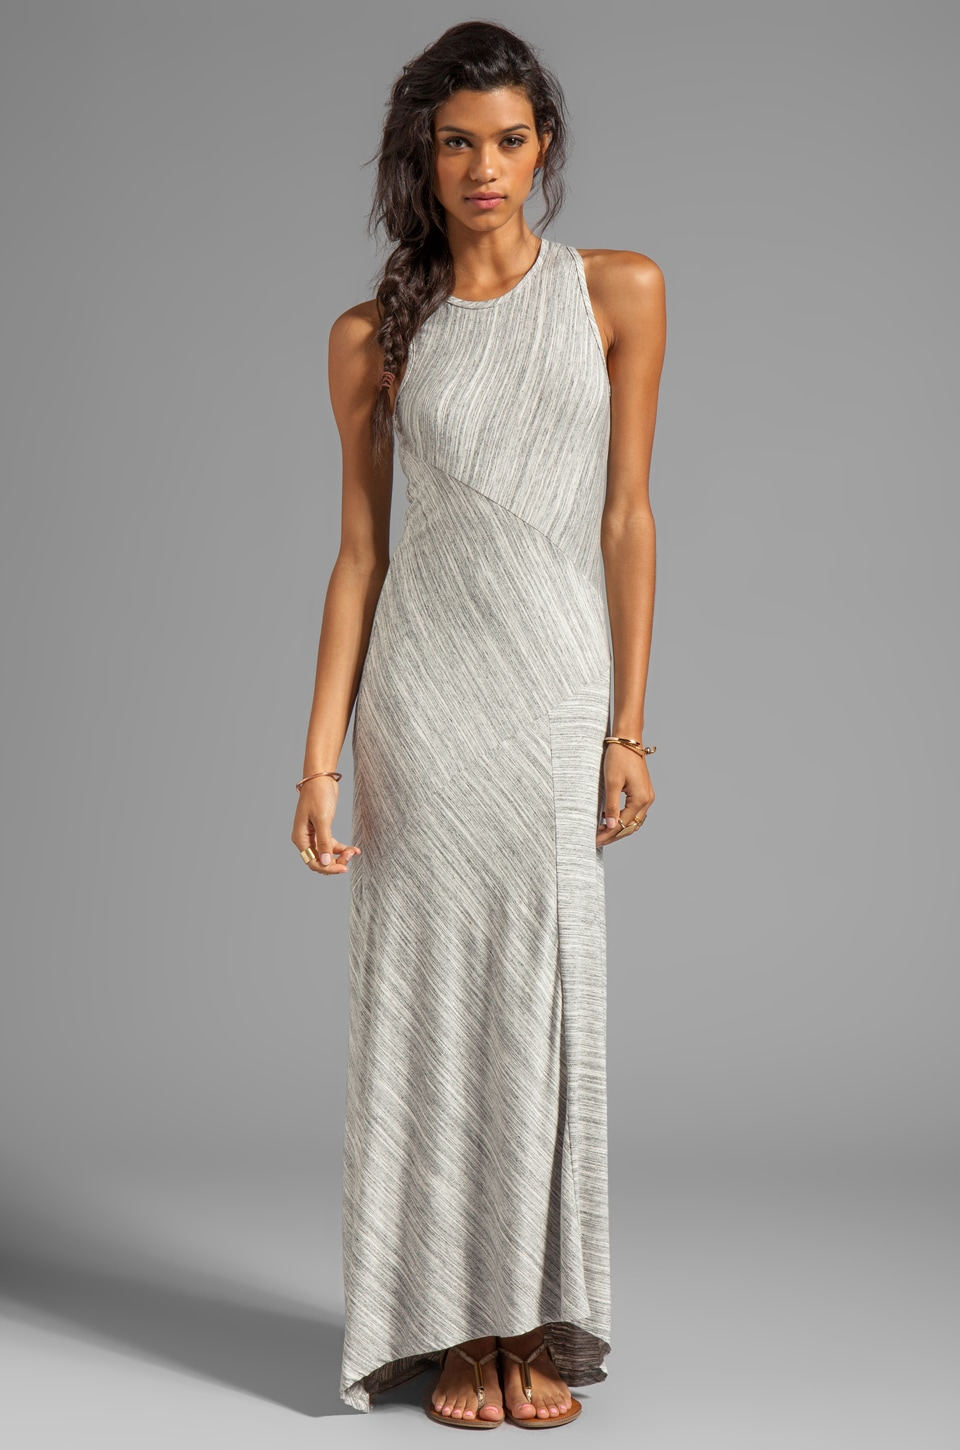 dolan Classic Club Maxi Dress in Marble